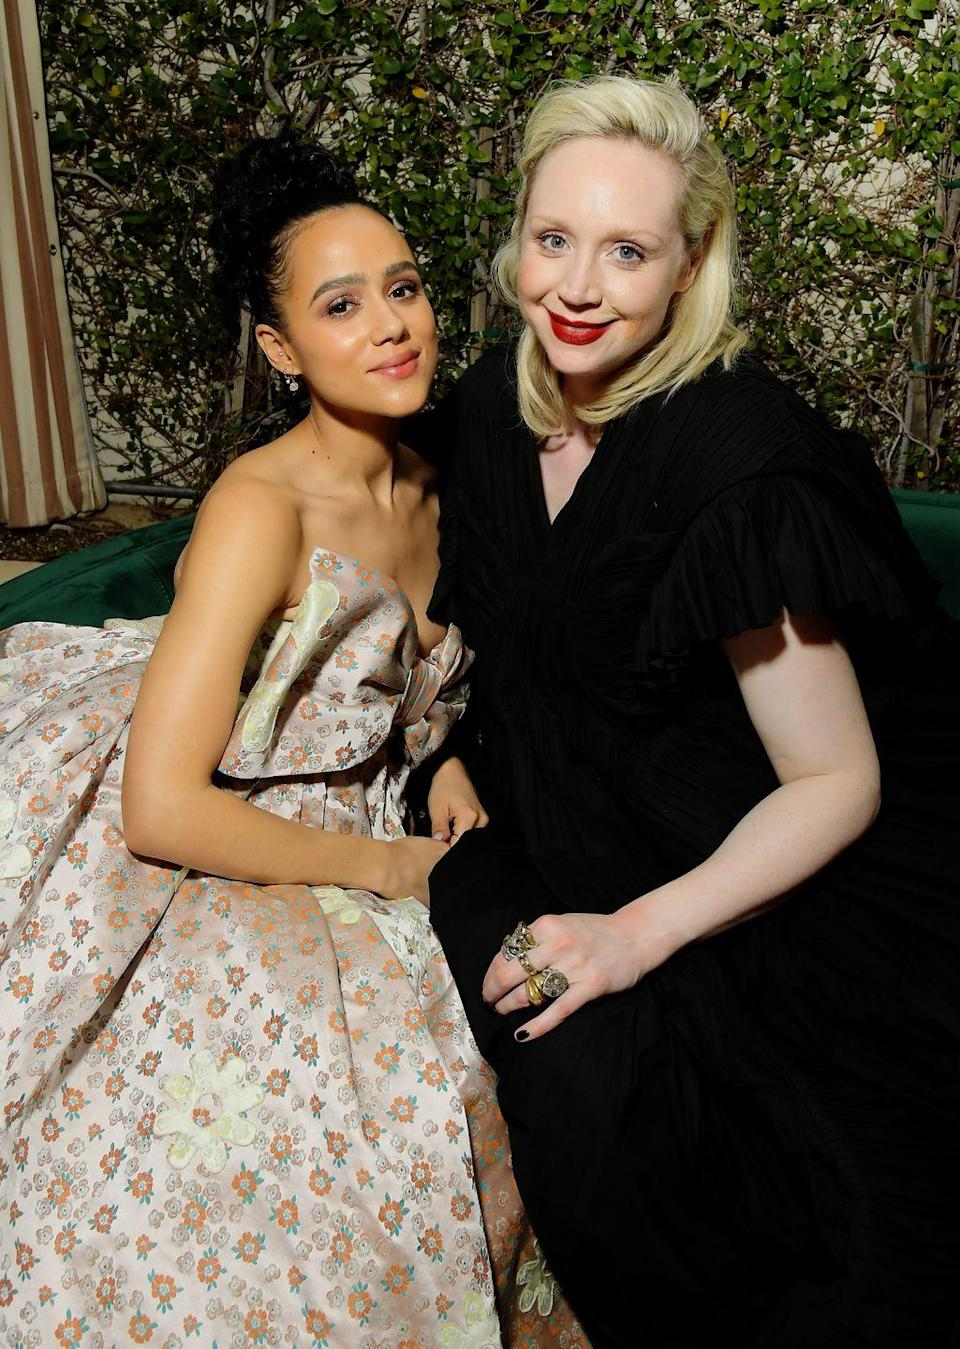 <p>Another SAG award GOT reunion happened at the Netflix afterparty where Nathalie Emmanuel and Gwendoline Christie caught up.</p>